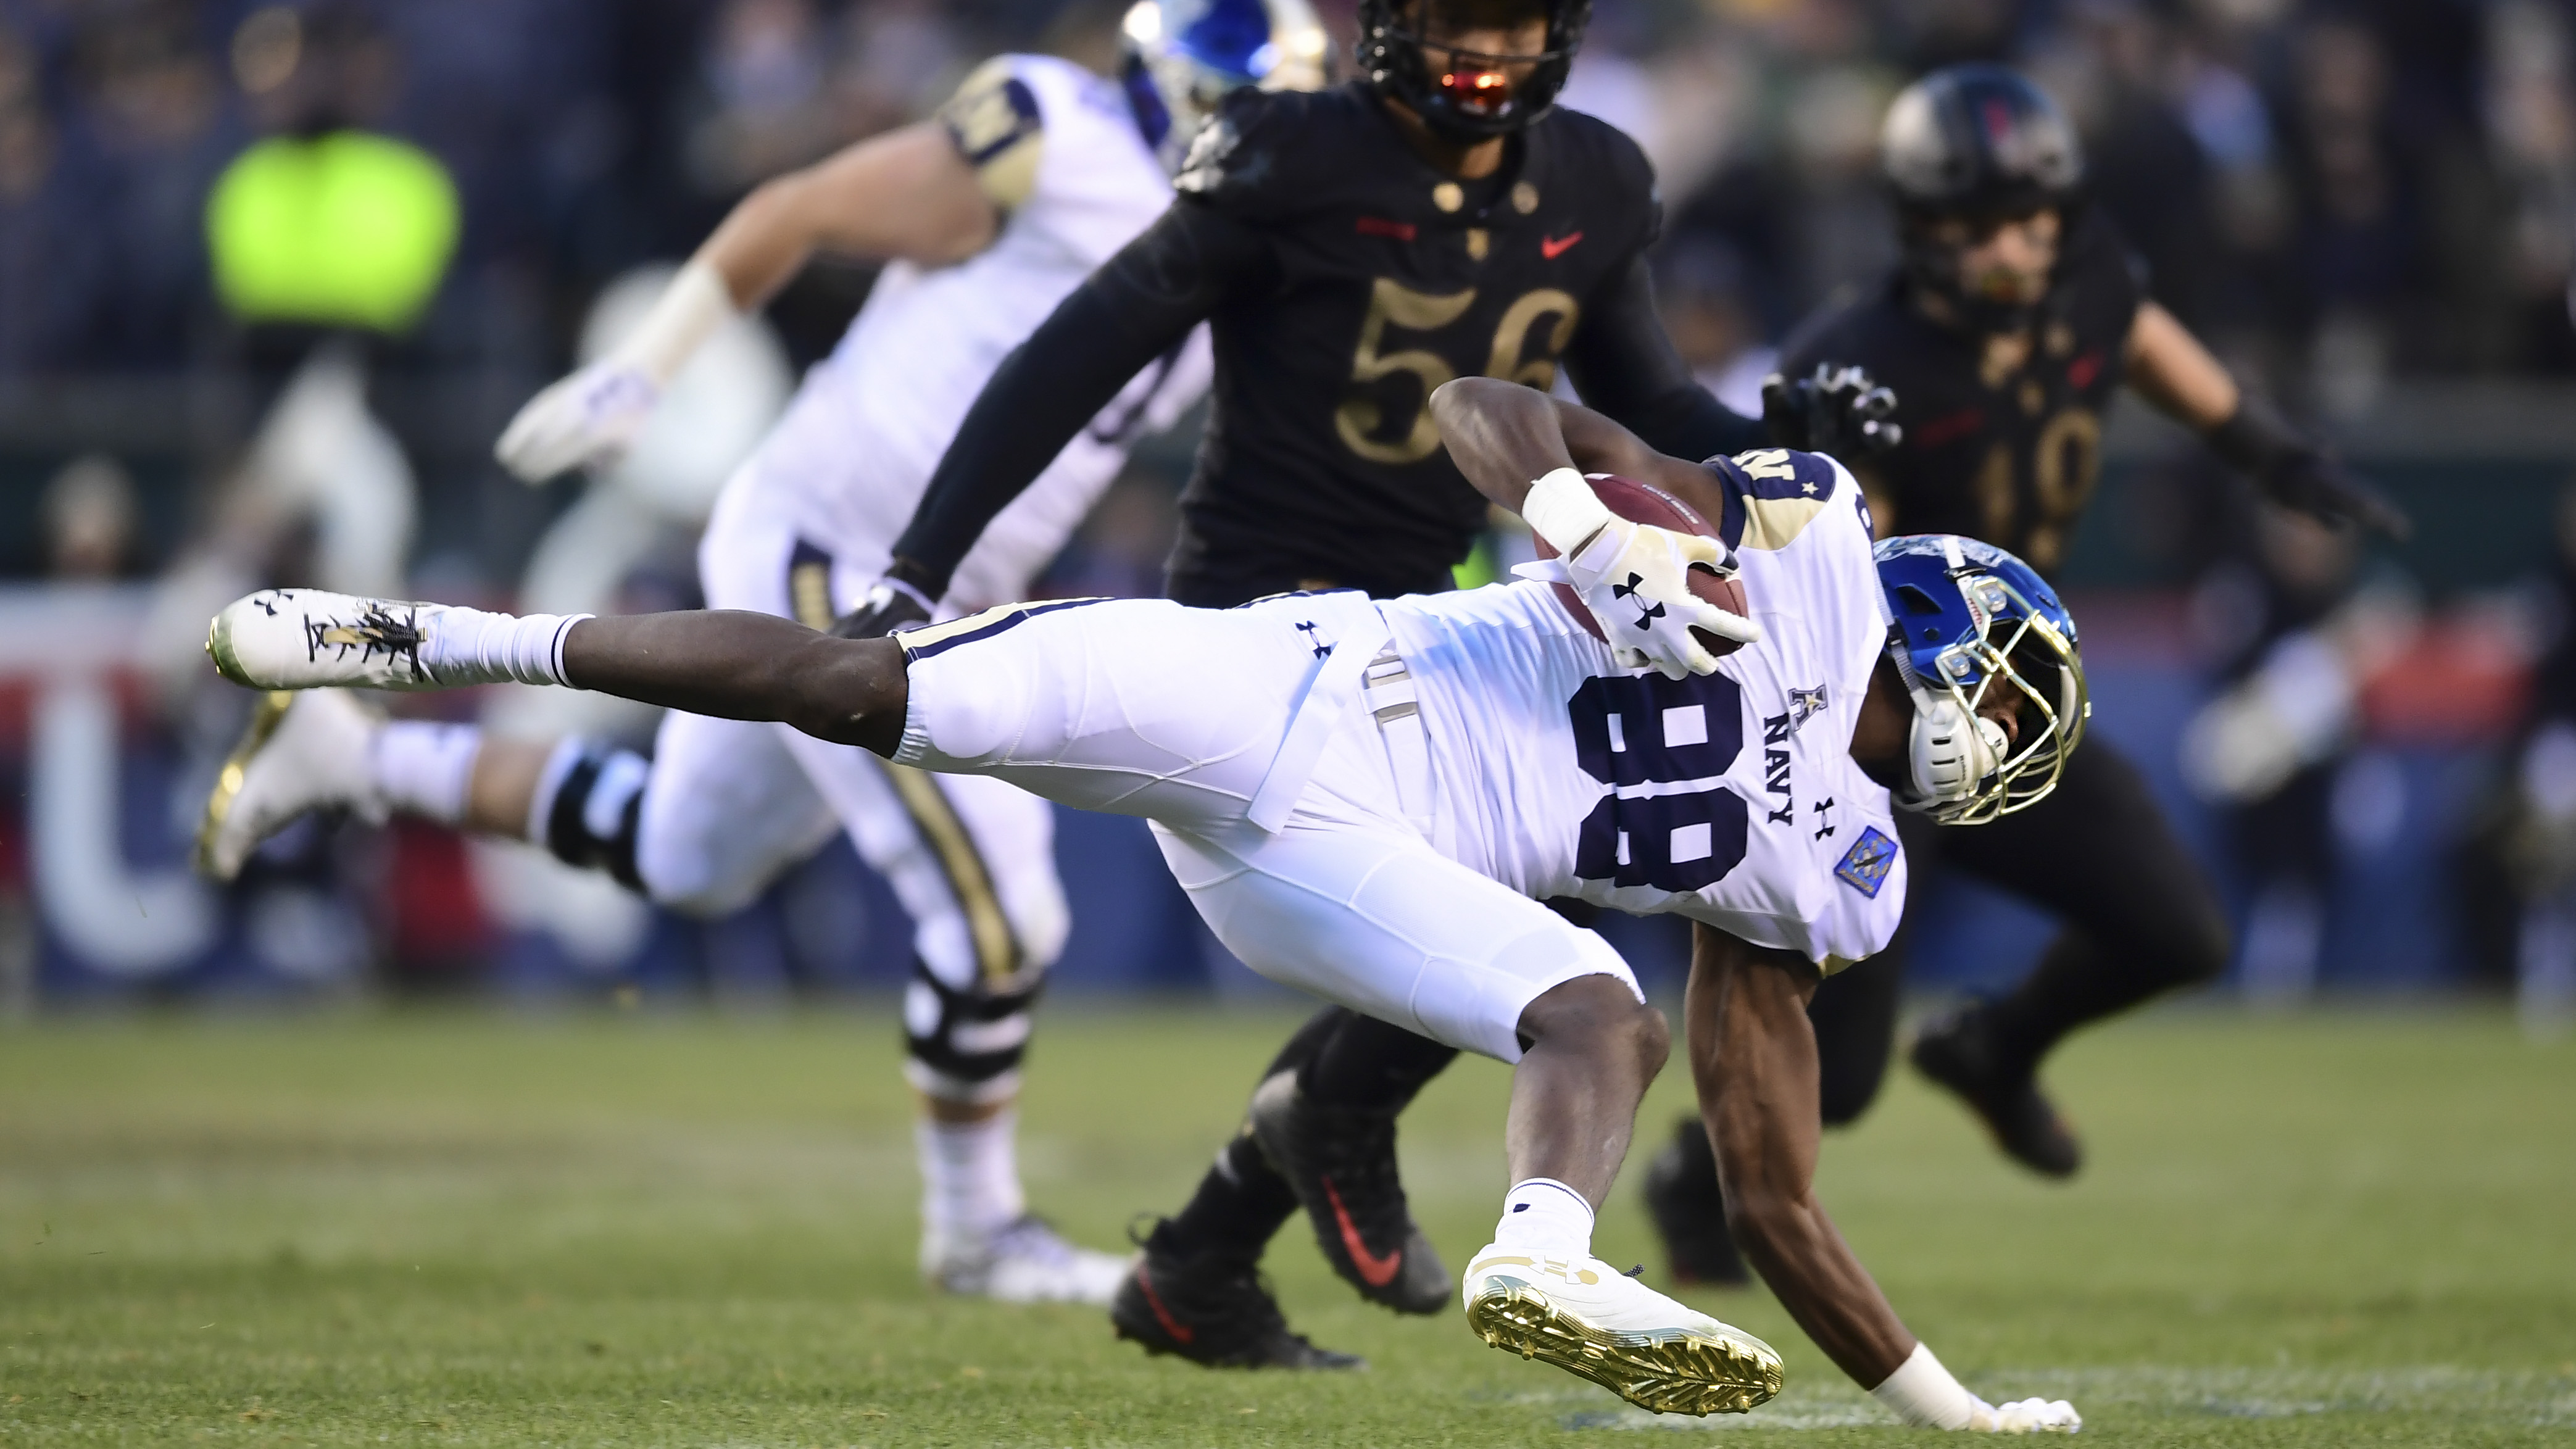 Mychal Cooper #88 of the Navy Midshipmen carries the ball during the first quarter of the game against Army Black Knights at Lincoln Financial Field on December 08, 2018 in Philadelphia, Pennsylvania. (Photo by Sarah Stier/Getty Images)